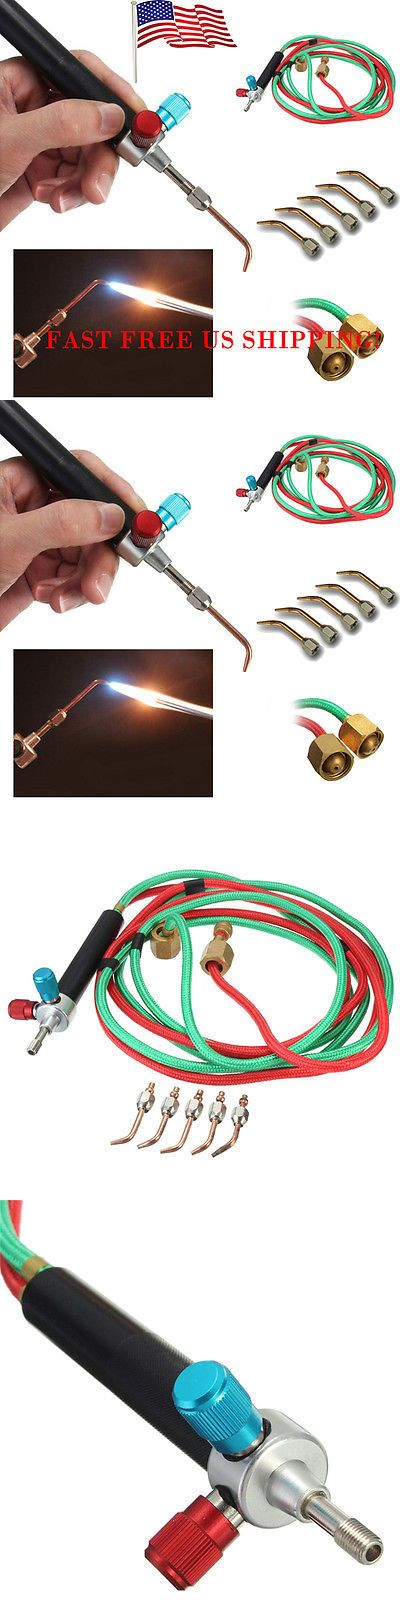 Soldering Tools and Accessories 179261: New Mini Micro Gas Jewelers Torch Welding Soldering Jewelry + 5 Tips Usa Little -> BUY IT NOW ONLY: $38.49 on eBay!